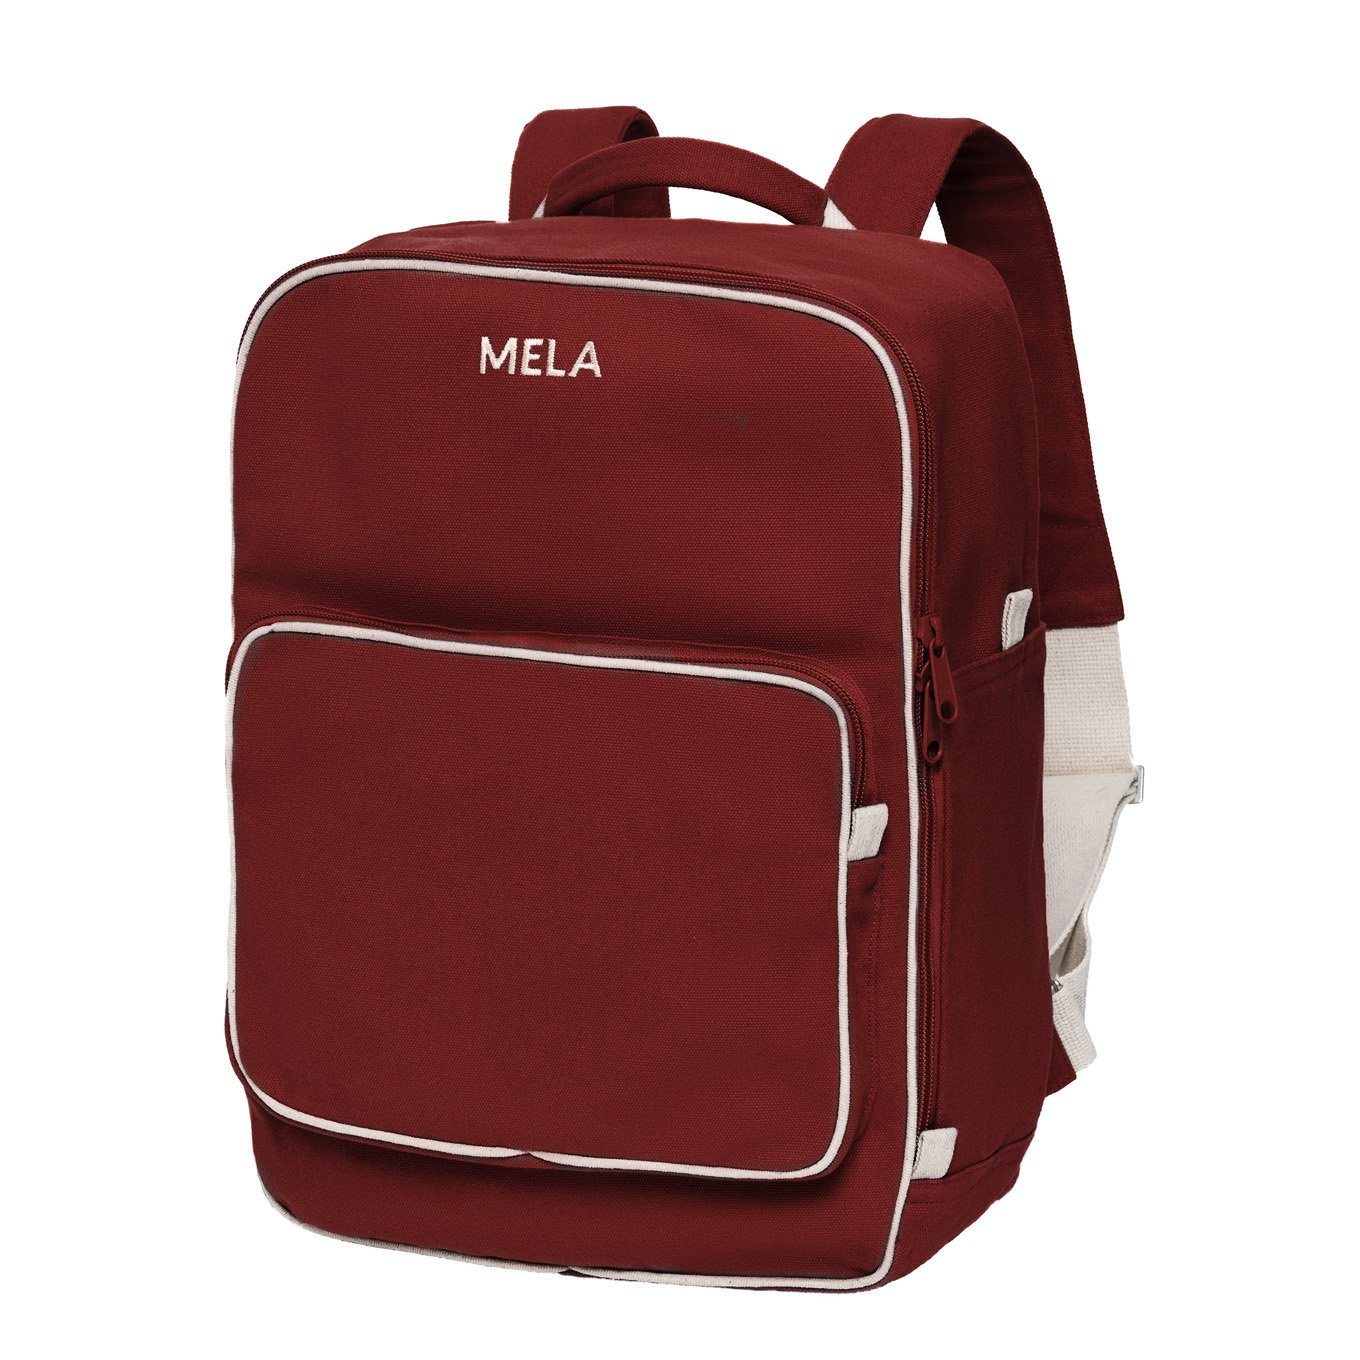 Backpack MELA II Burgundy Red - Komodo Fashion